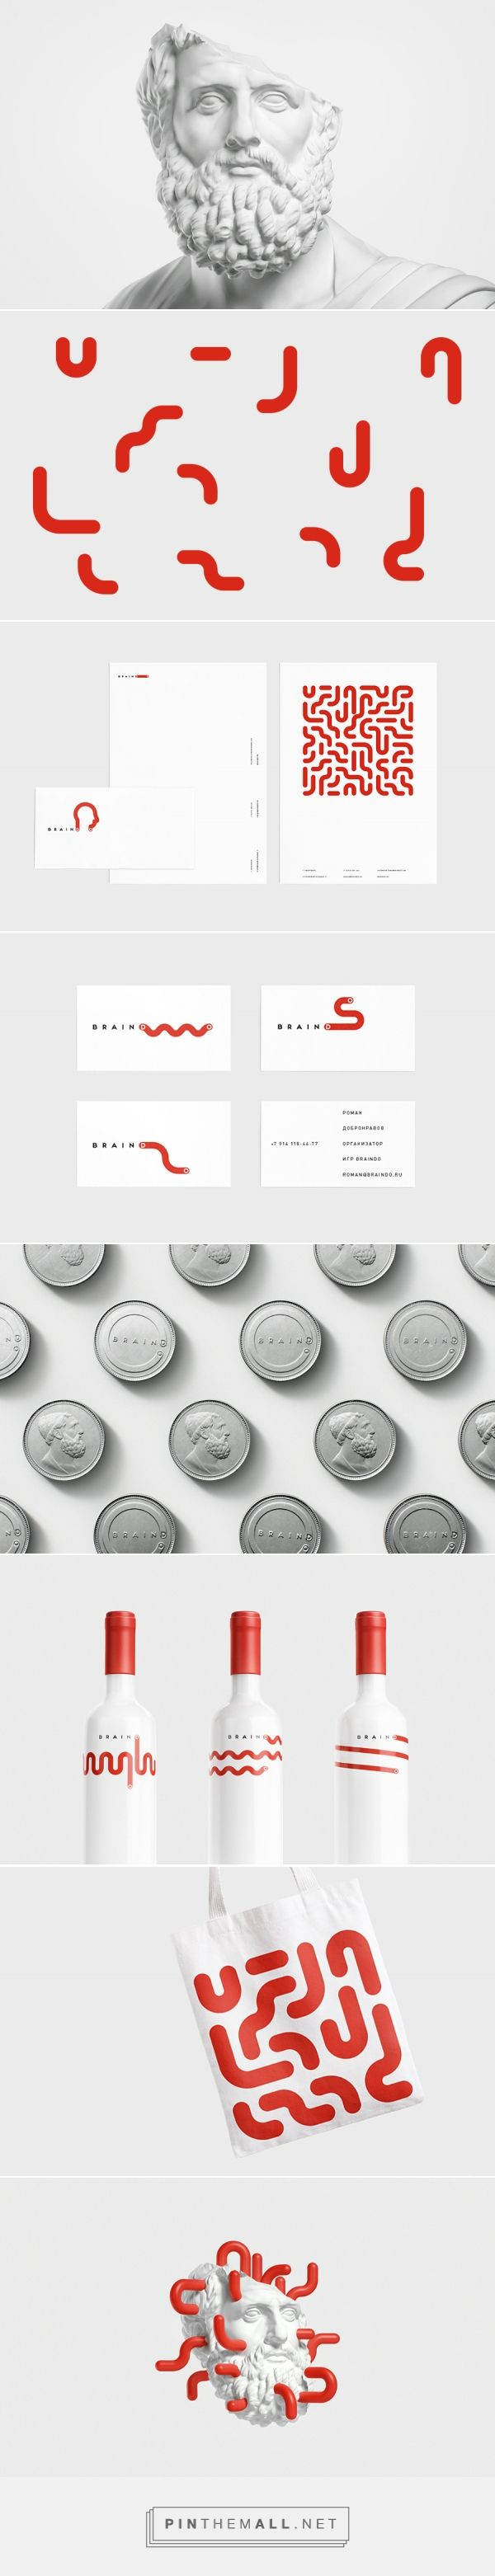 Braindo ho! Branding agency, Khabarovsk, RU curated by Packaging Diva PD. Braindo is intellectual fights which take place in several Russian cities every month. All the events are private; the participants are mid-level managers and businessmen. Branding, packaging, graphic design.